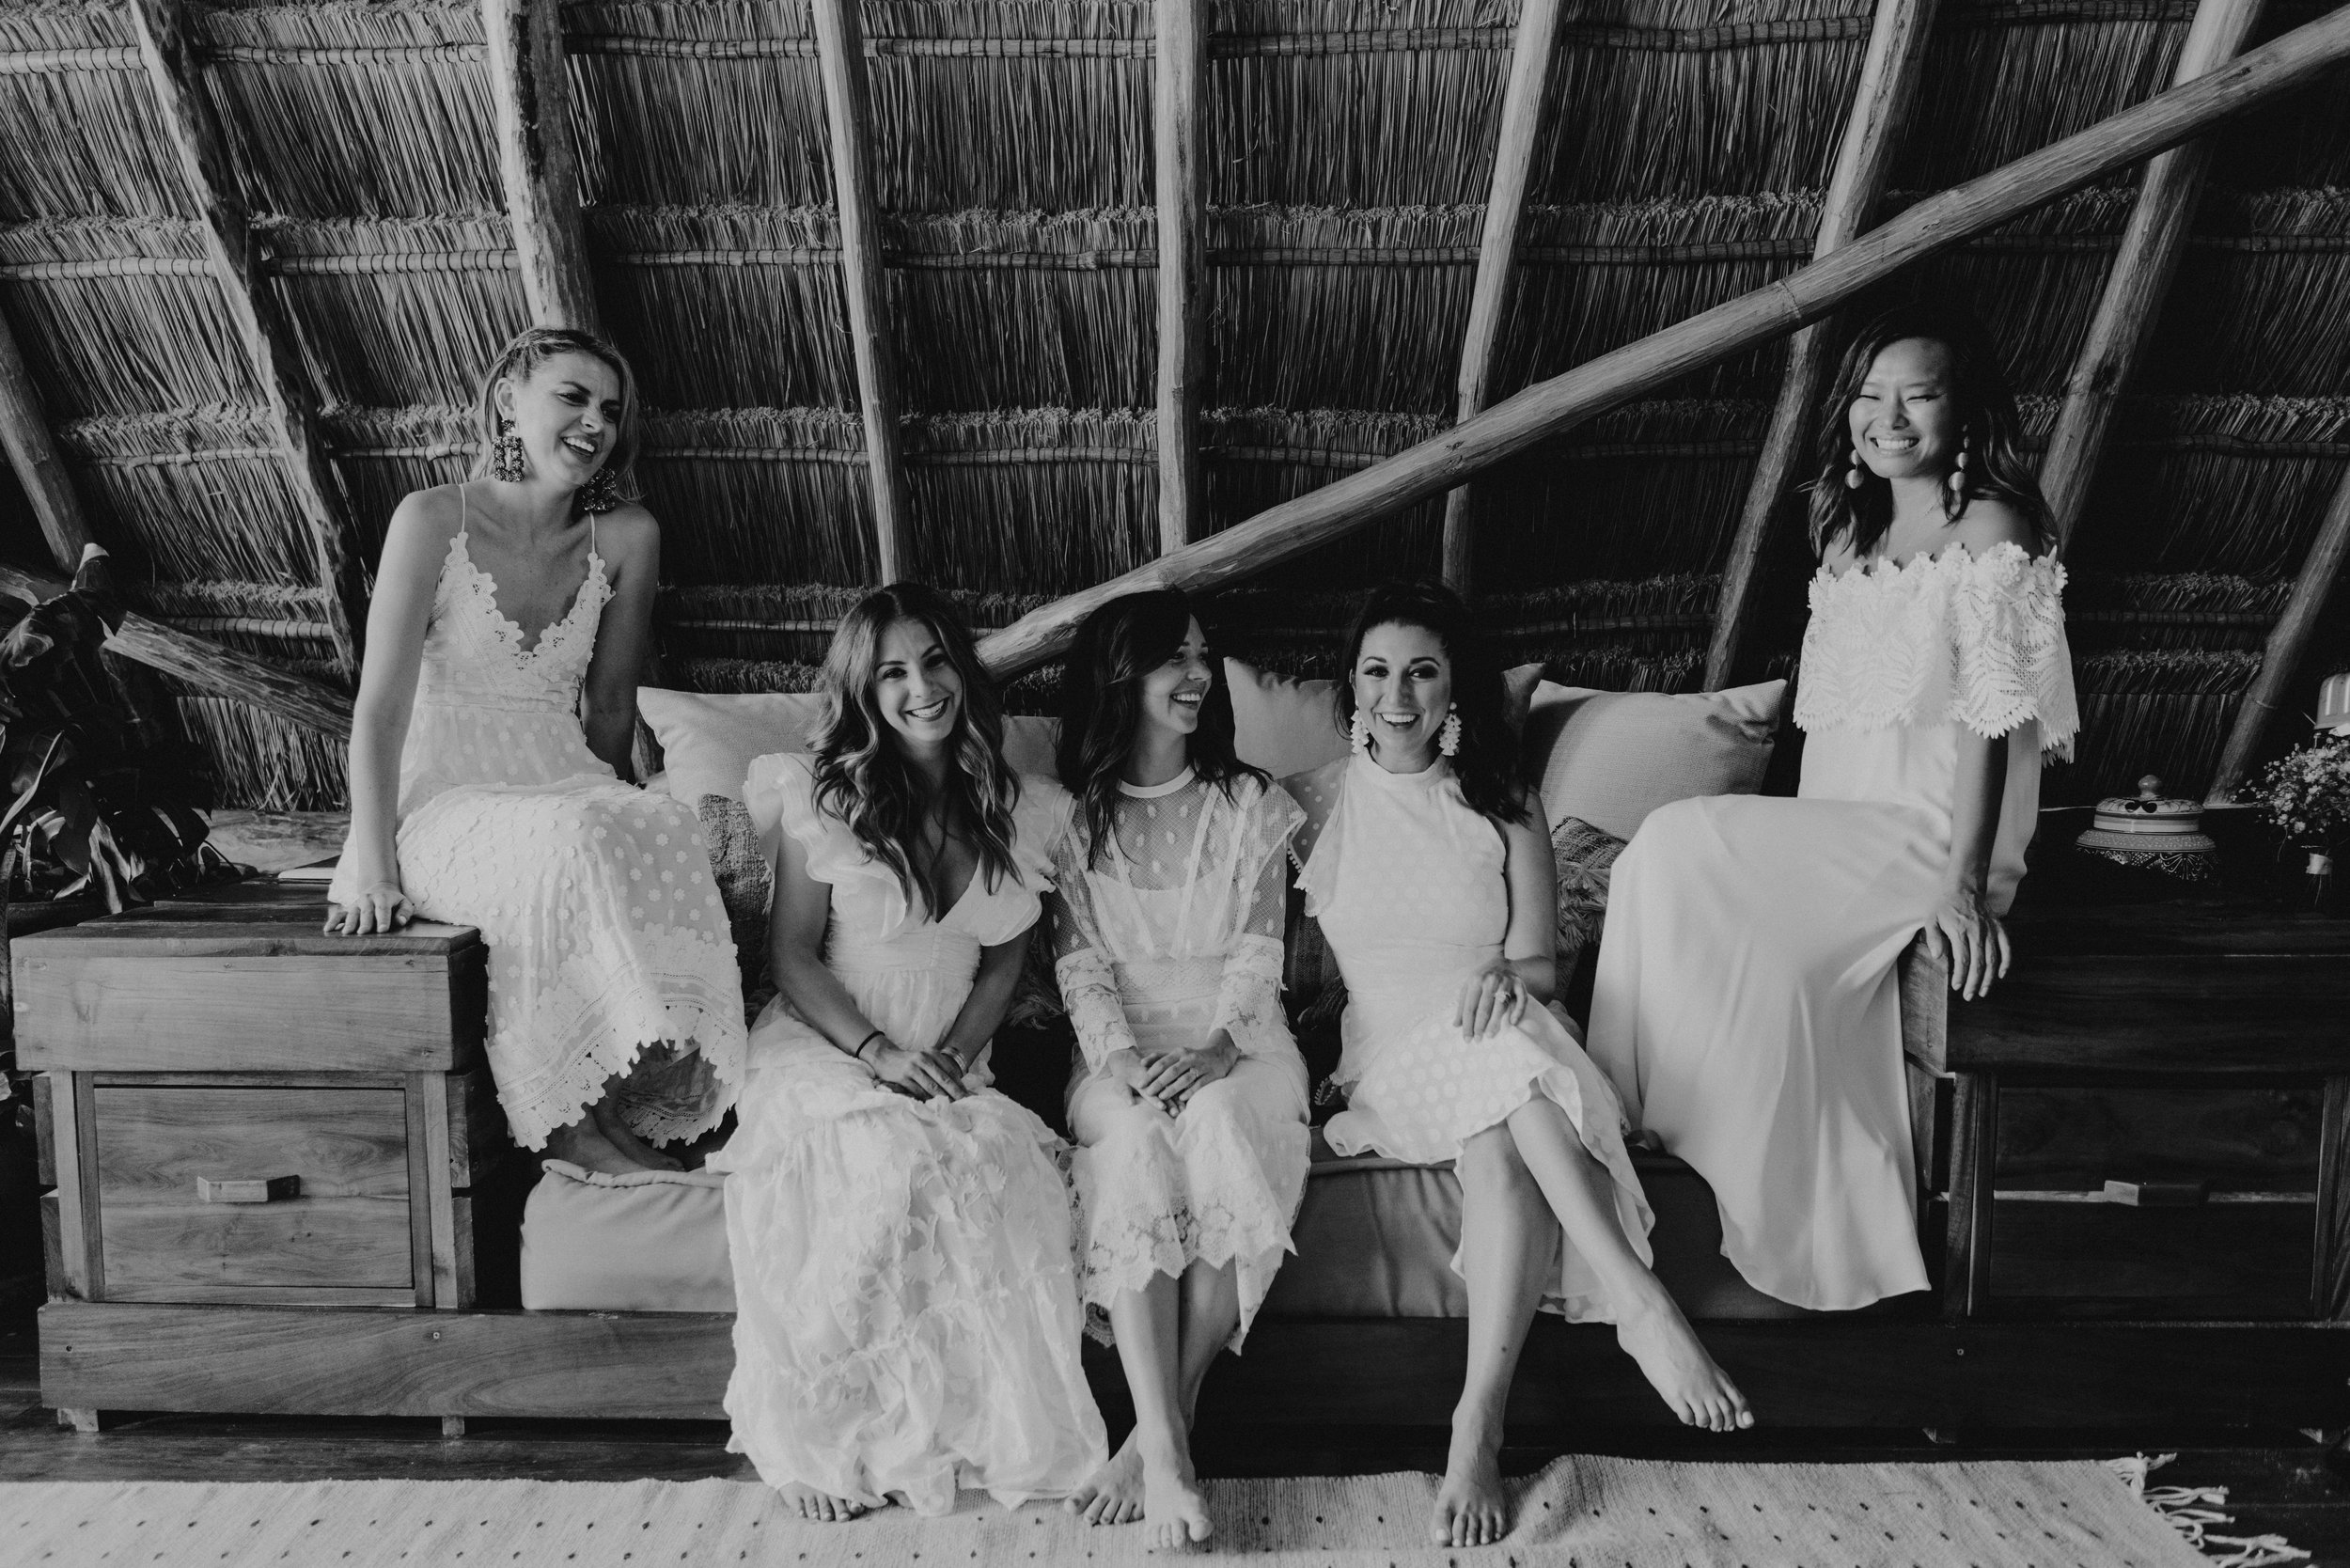 Joanna-and-Cameron_Ahua_Tulum_Wedding_Chellise_MIchael-Photography-230.jpg